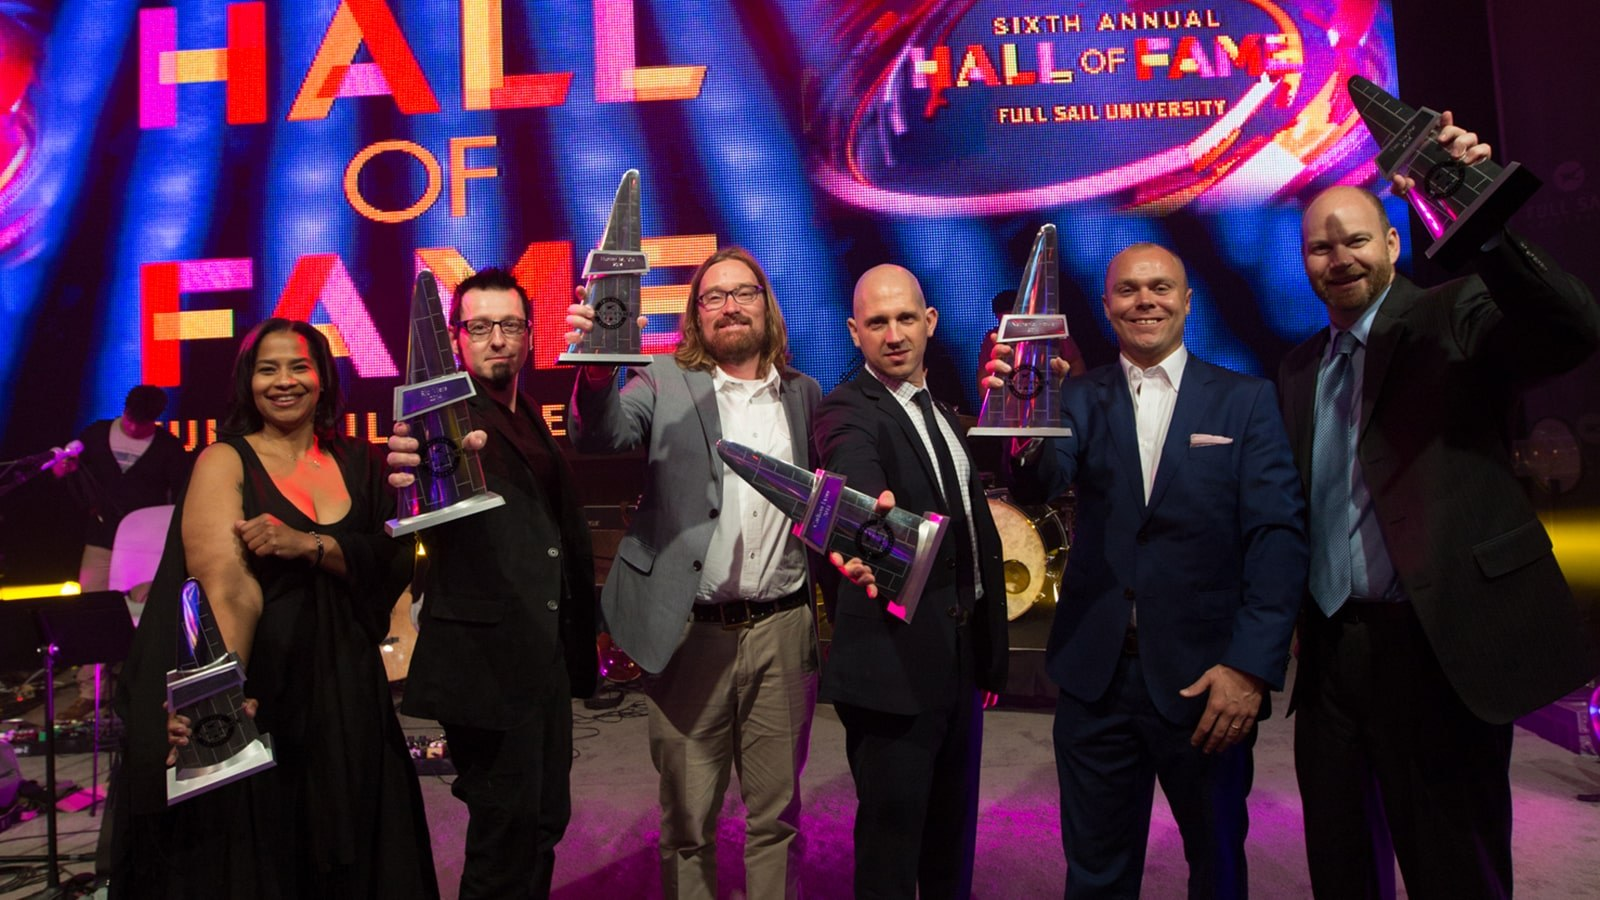 Highlights From the Sixth Annual Hall of Fame - Hero image